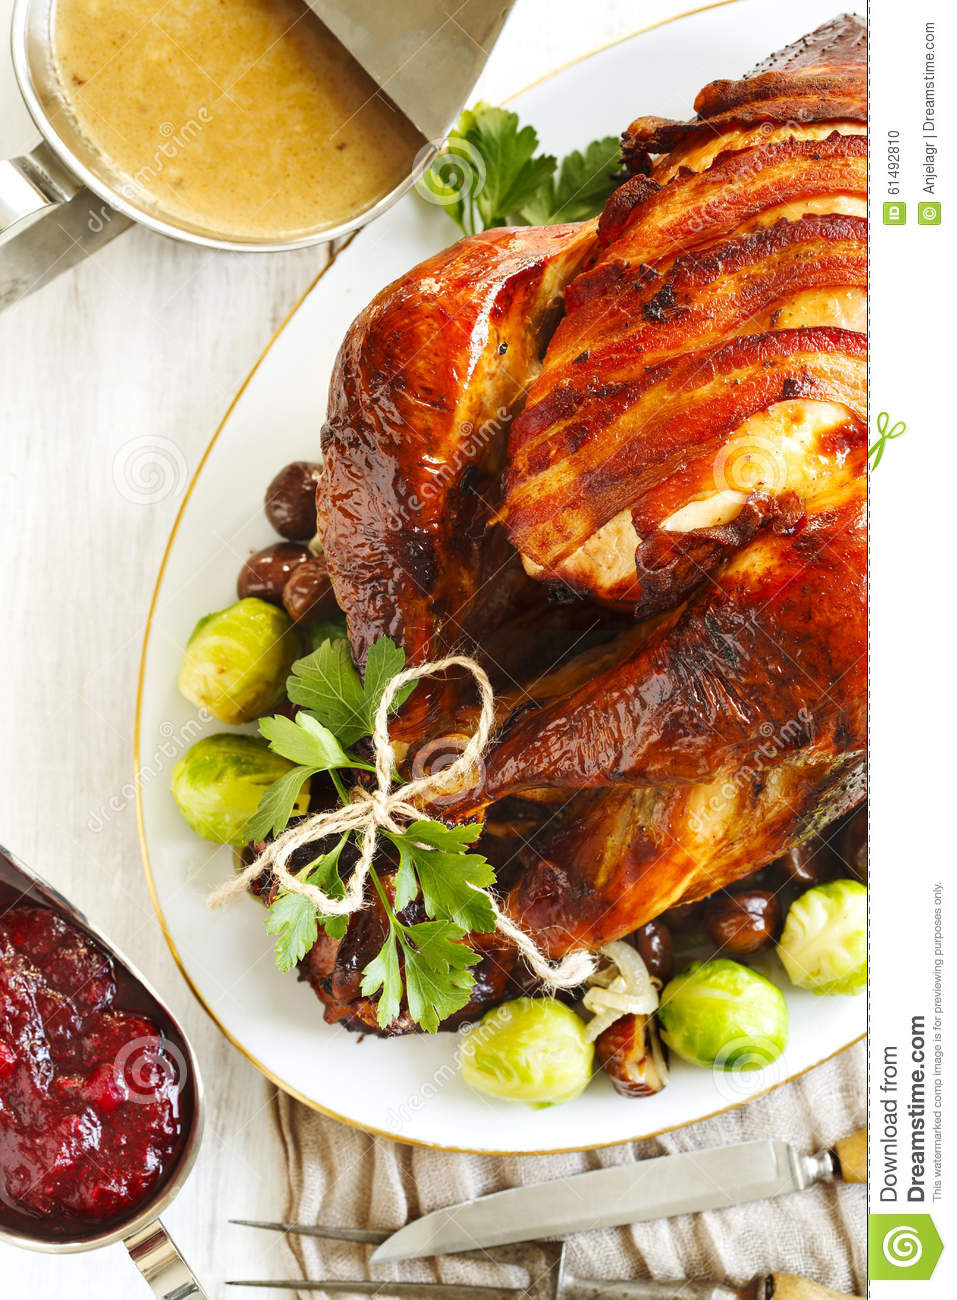 Prepared Thanksgiving Turkey  Roasted Turkey With Bacon And Garnished With Chestnuts And